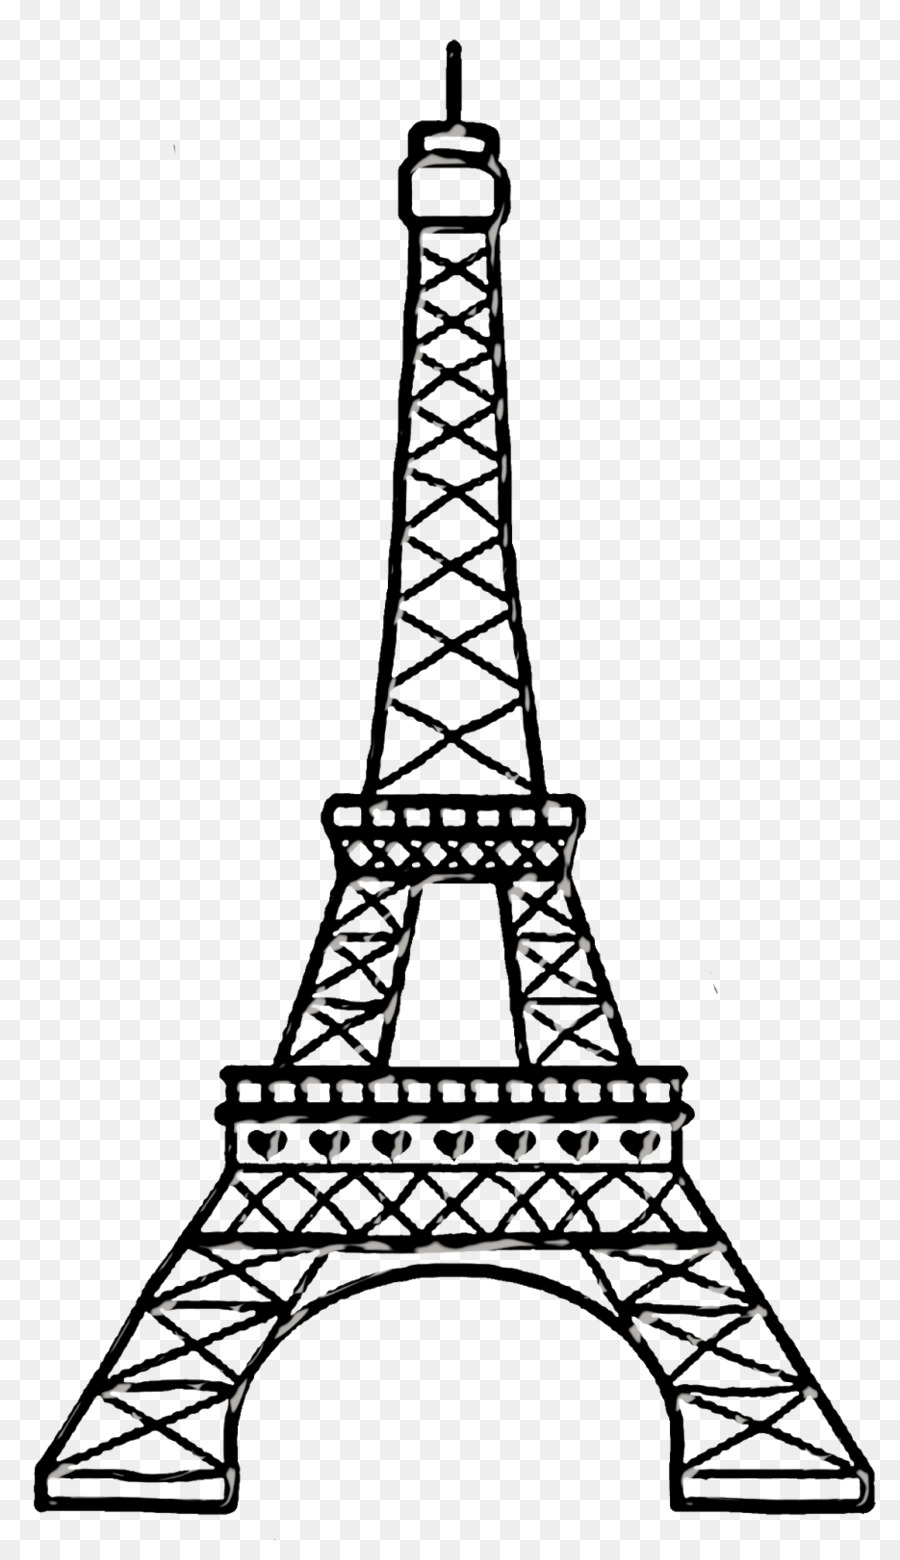 Clipart of the eiffel tower svg freeuse Eiffel Tower Drawing clipart - Drawing, Sketch, Line, transparent ... svg freeuse